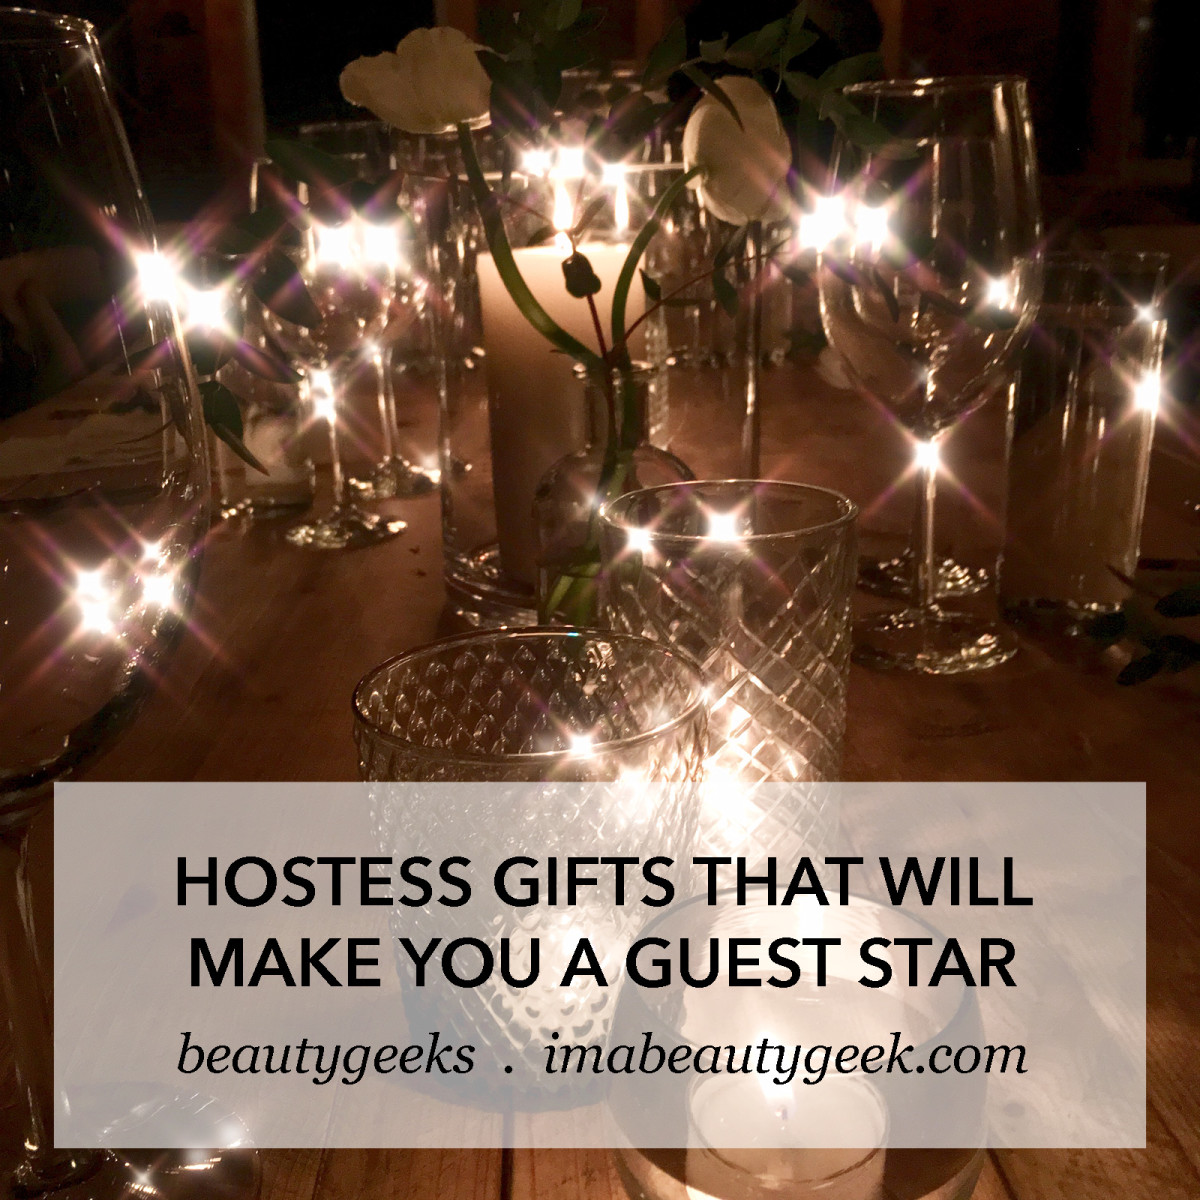 Best hostess gifts to make you a guest star_New Year's resolutions